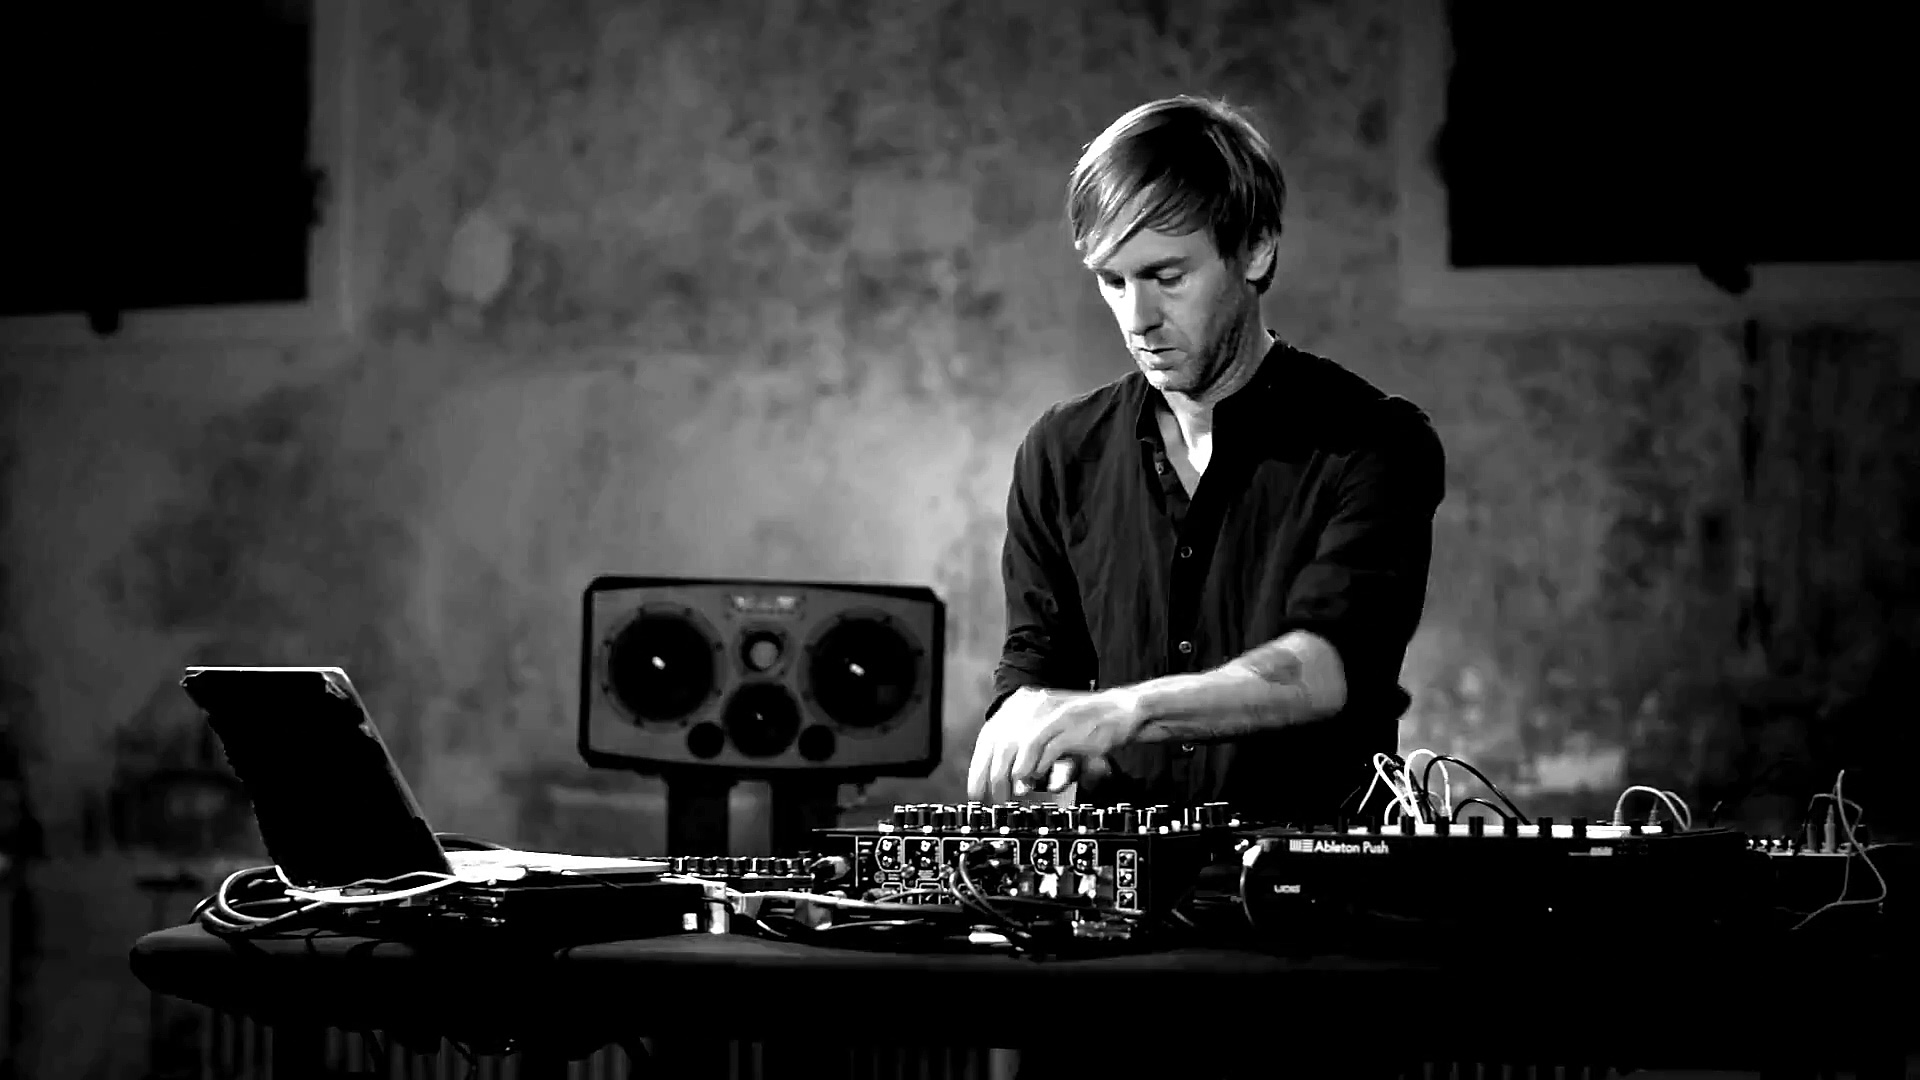 Richie Hawtin is featured in our video about dj technology.